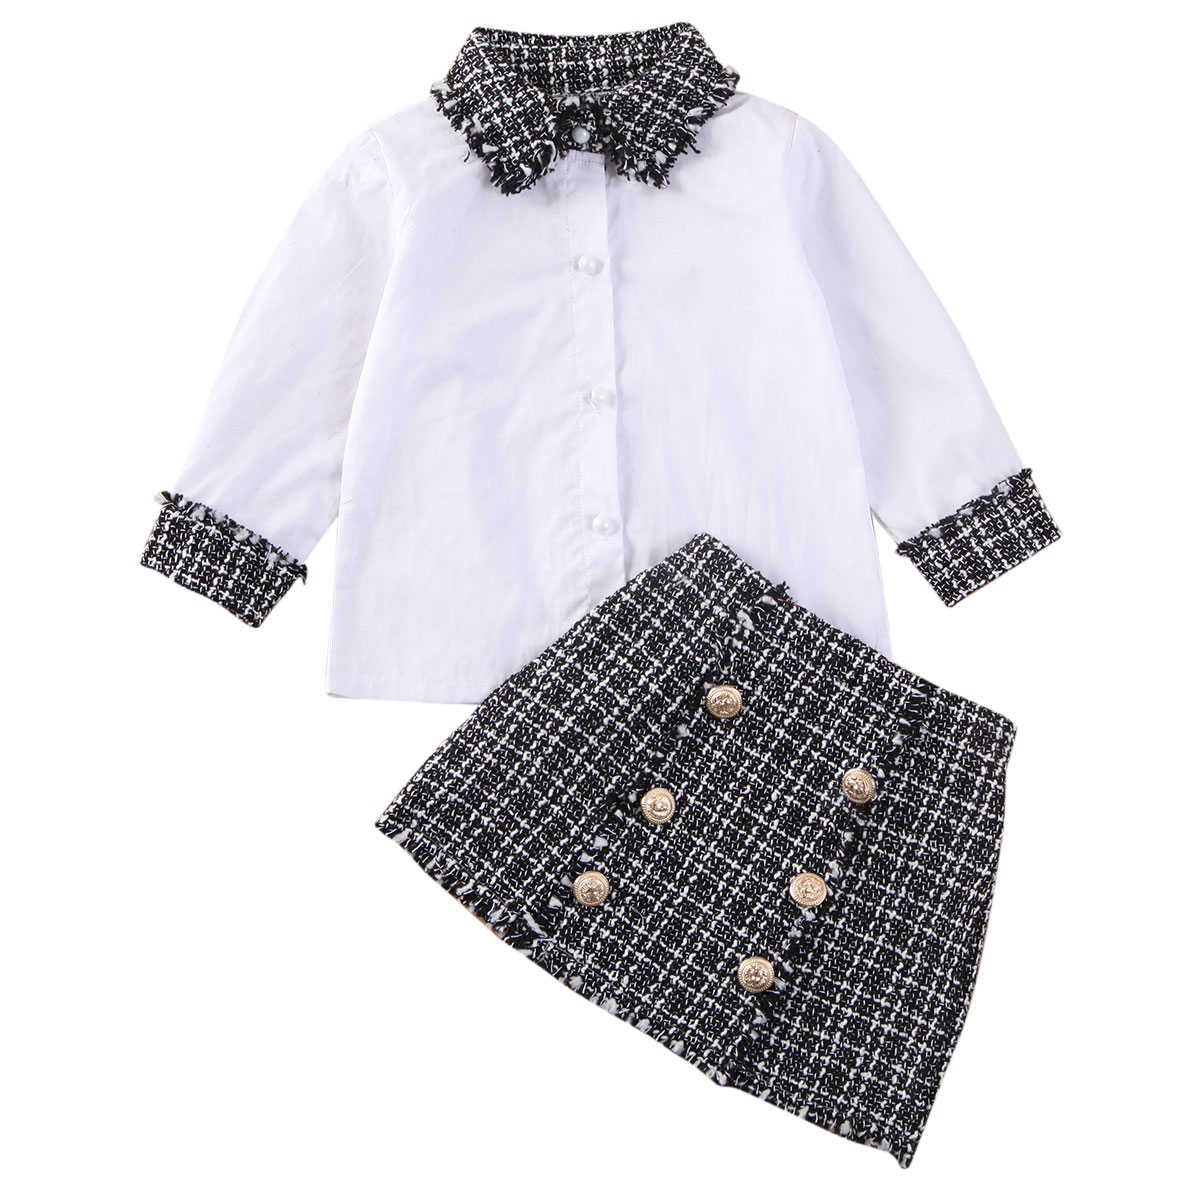 2020 Princess Infant Baby Girls Clothes Sets 1-6Y Plaid Print Long Sleeve Shirts Tops+Mini A-Line Skirts Autumn Outfits